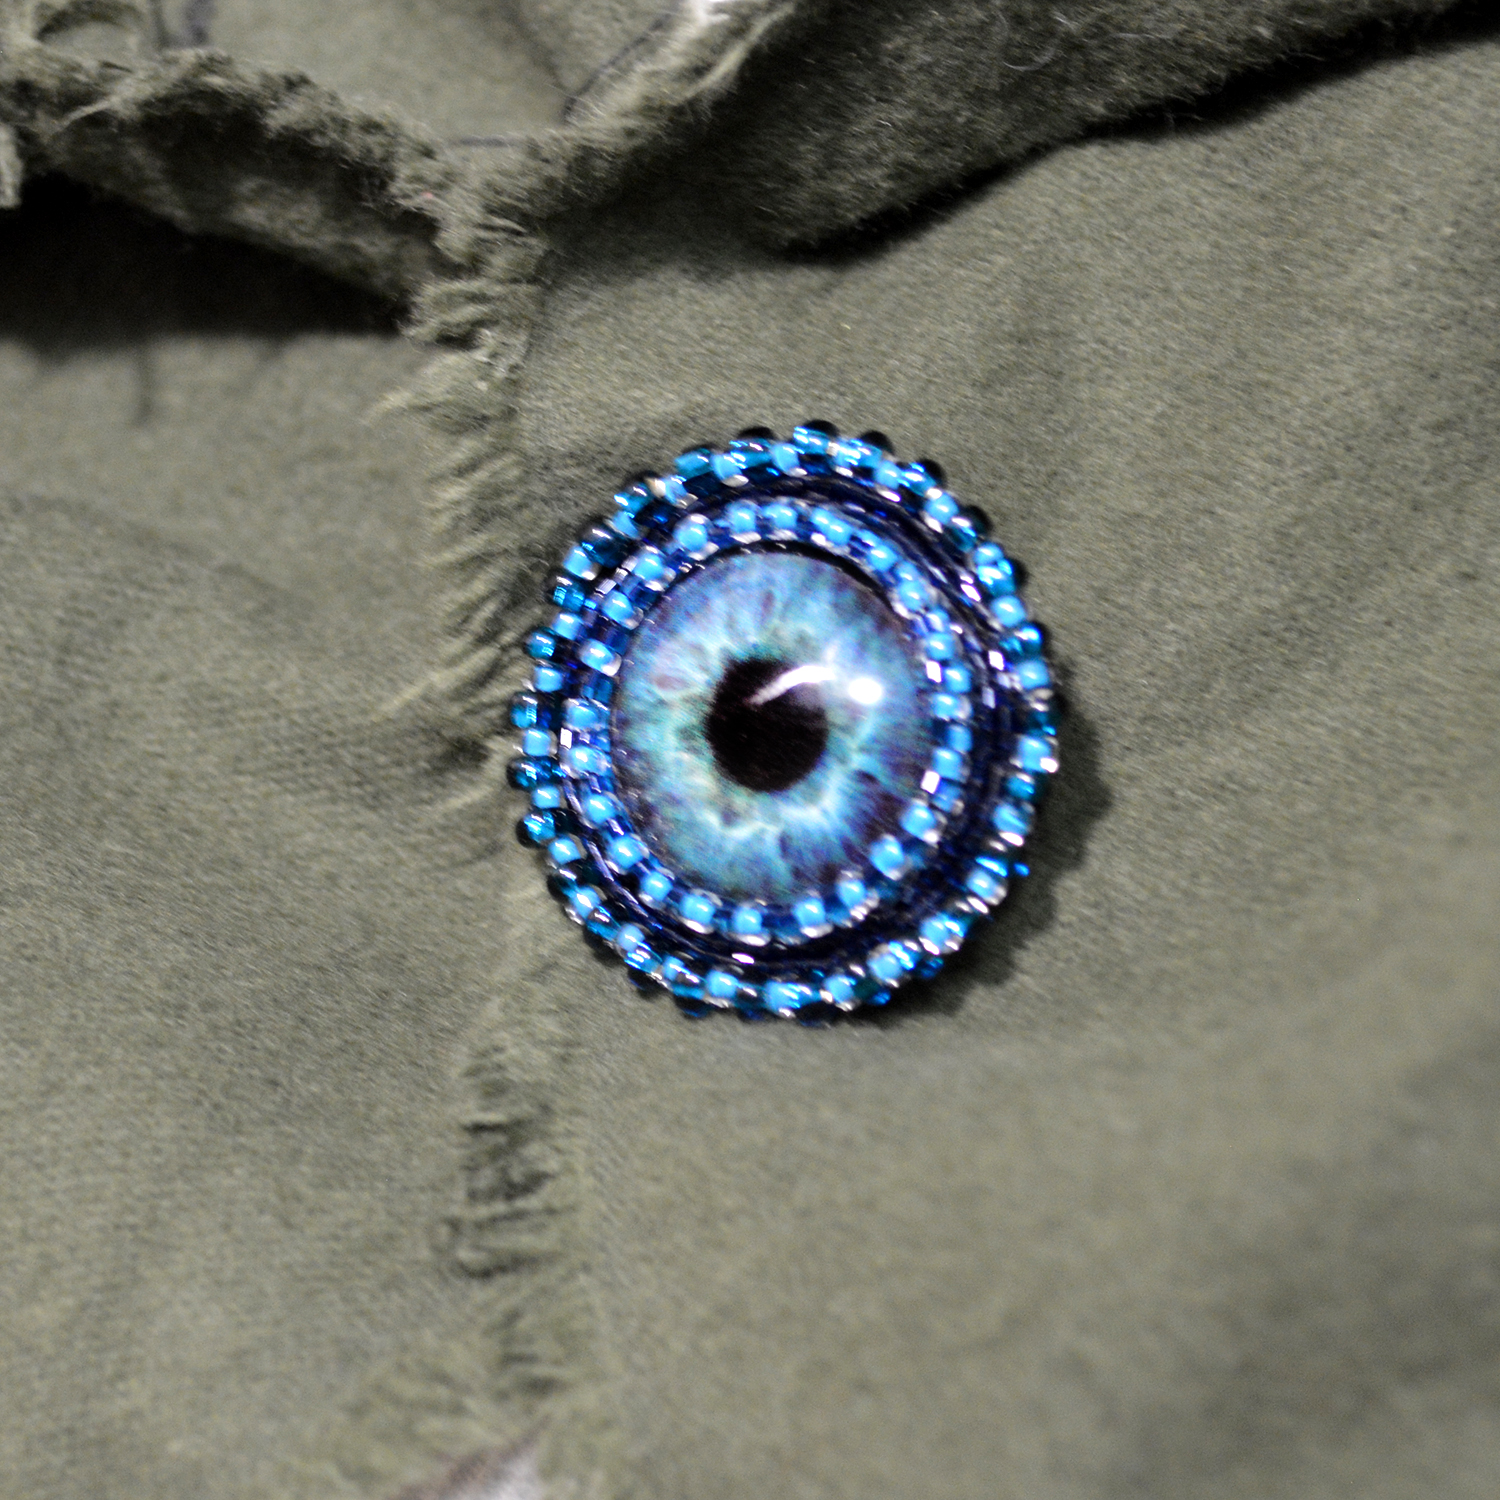 gallery lyst with in gucci swarovski normal jewelry product crystals blue eye brooch